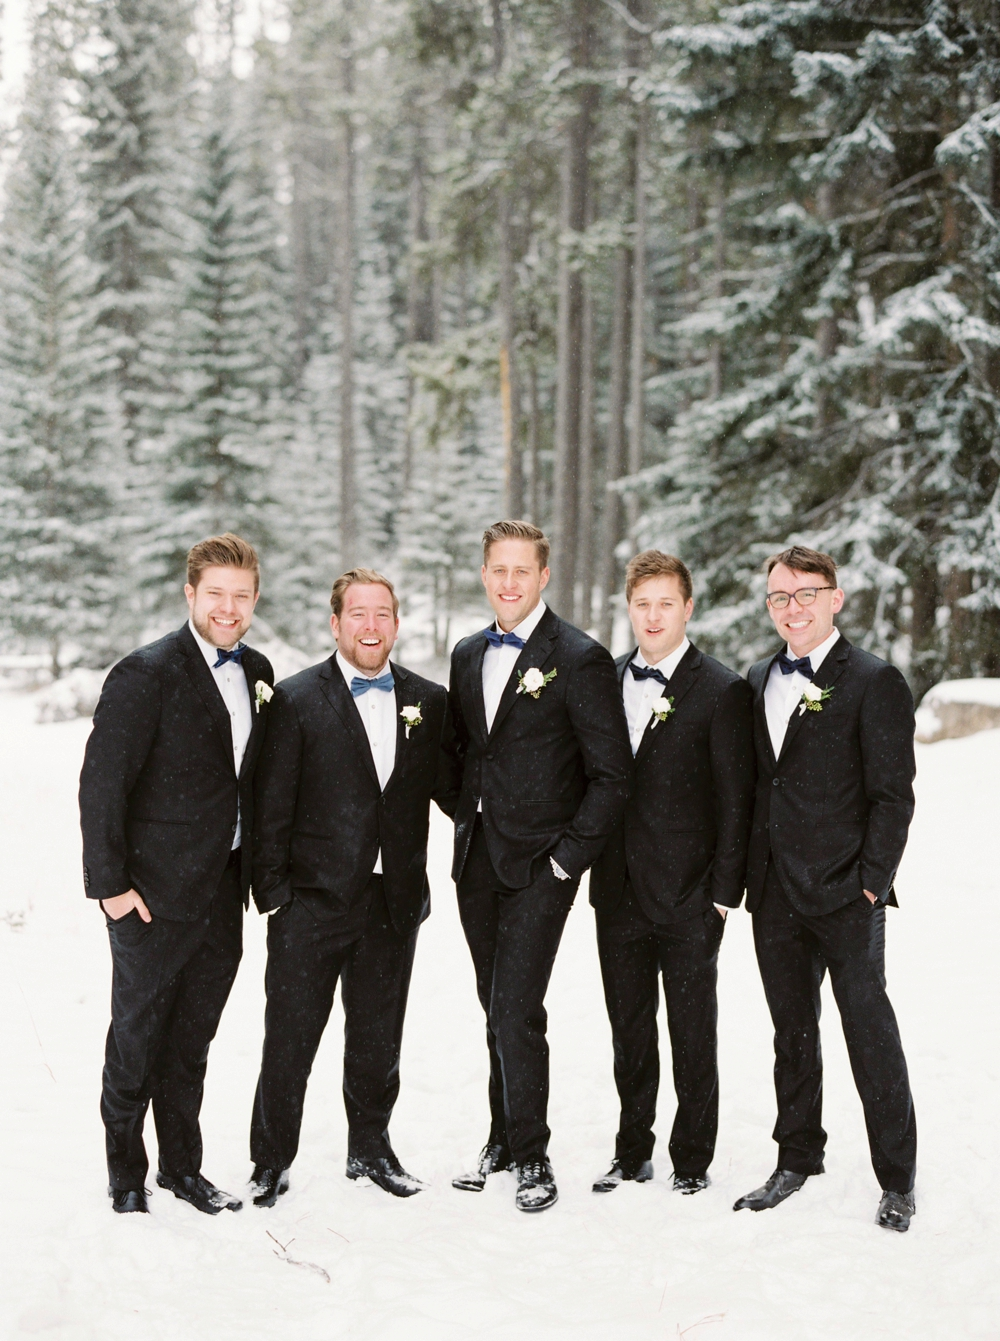 Calgary Wedding Photographers | Banff Wedding Photographer | Fairmont Hotel Banff Springs Hotel | Winter Wonderland Wedding | Mt Stephen Hall Banff Wedding